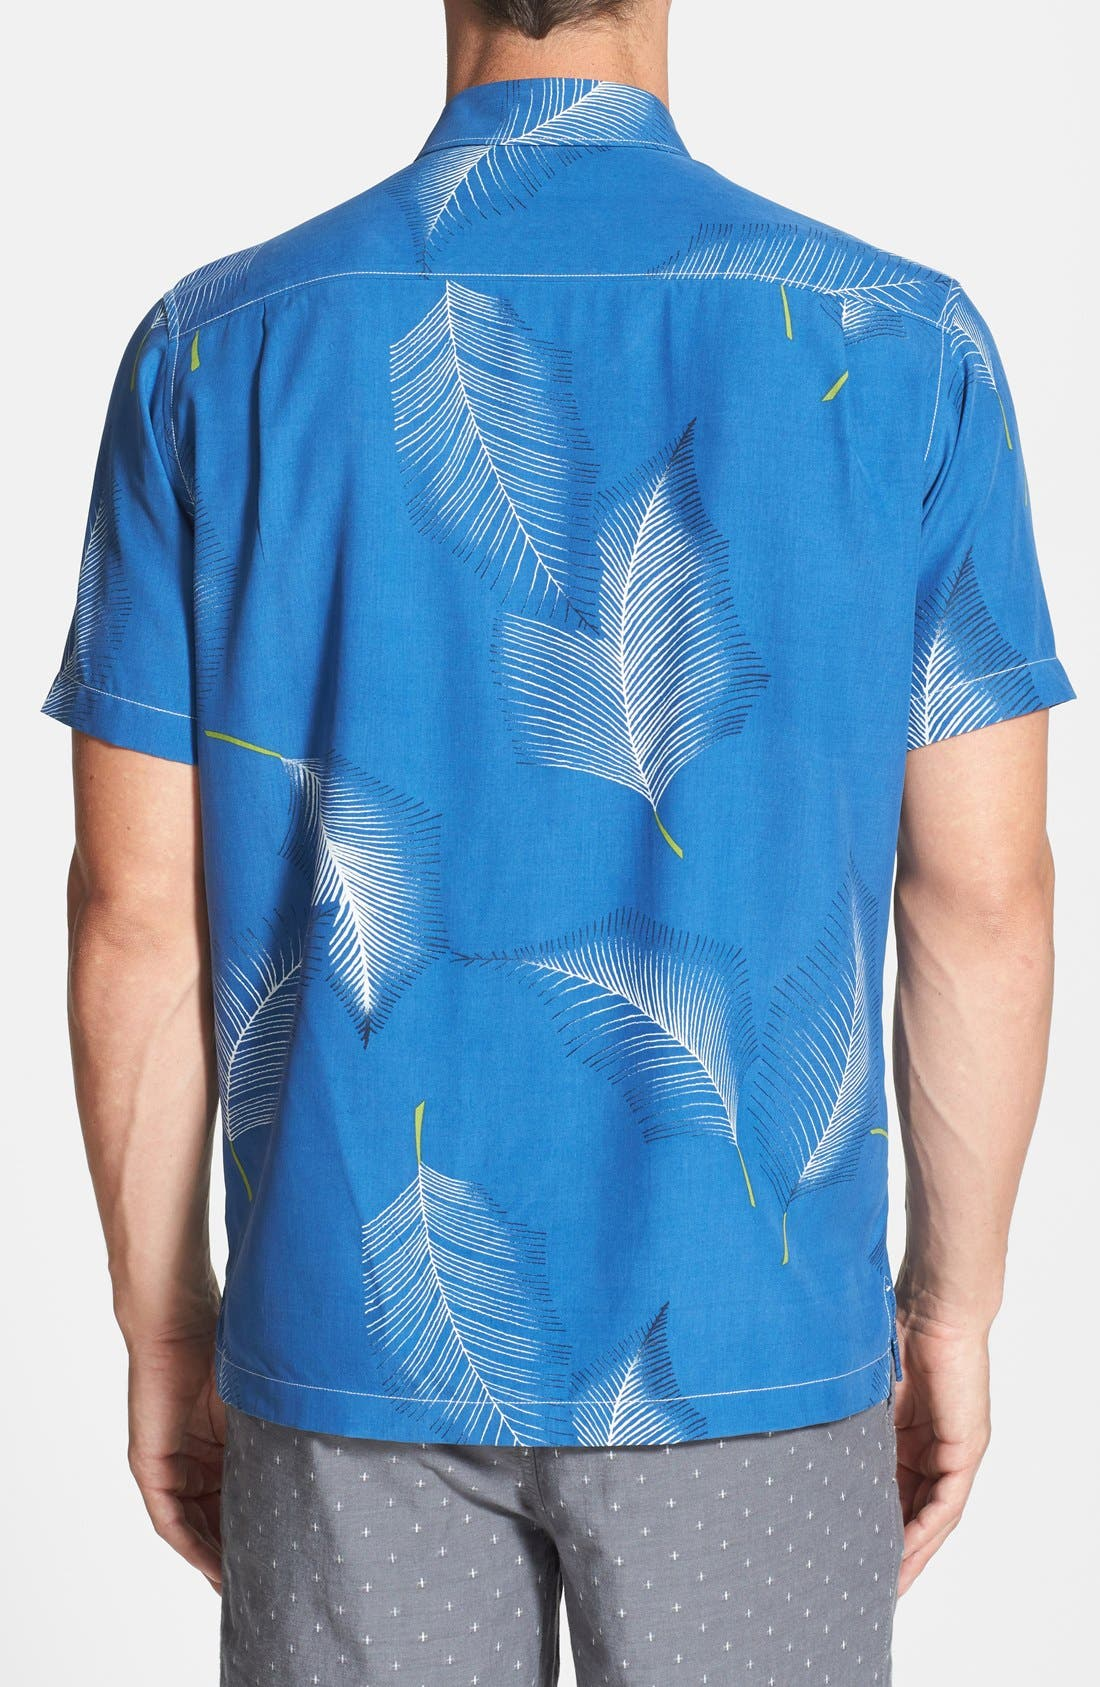 Alternate Image 2  - Tommy Bahama 'Feathered Fronds' Island Modern Fit Silk Campshirt